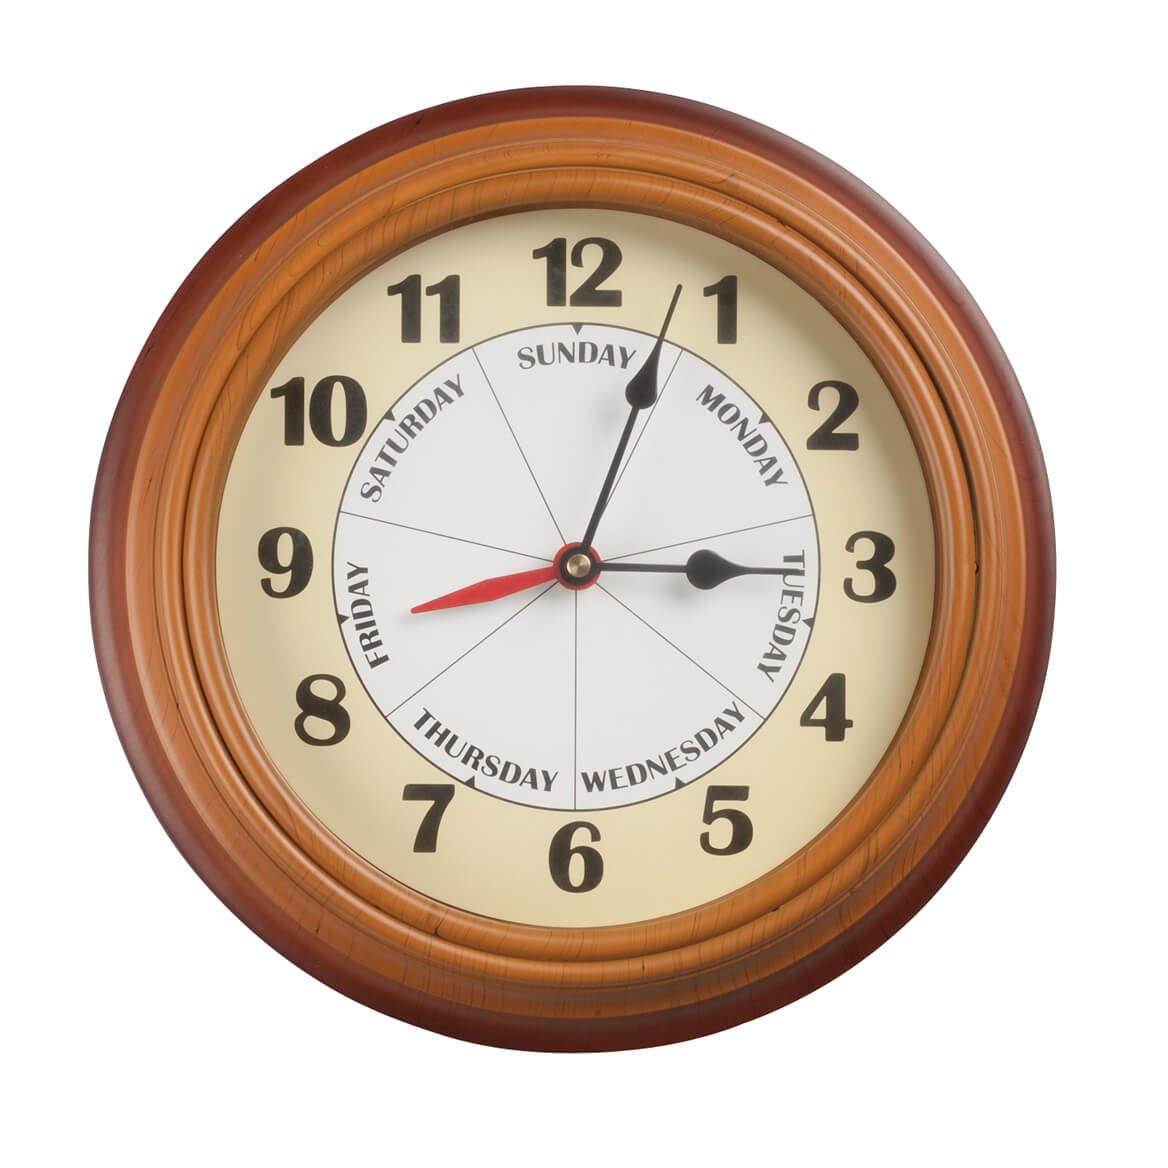 Day of the Week Clock-359992